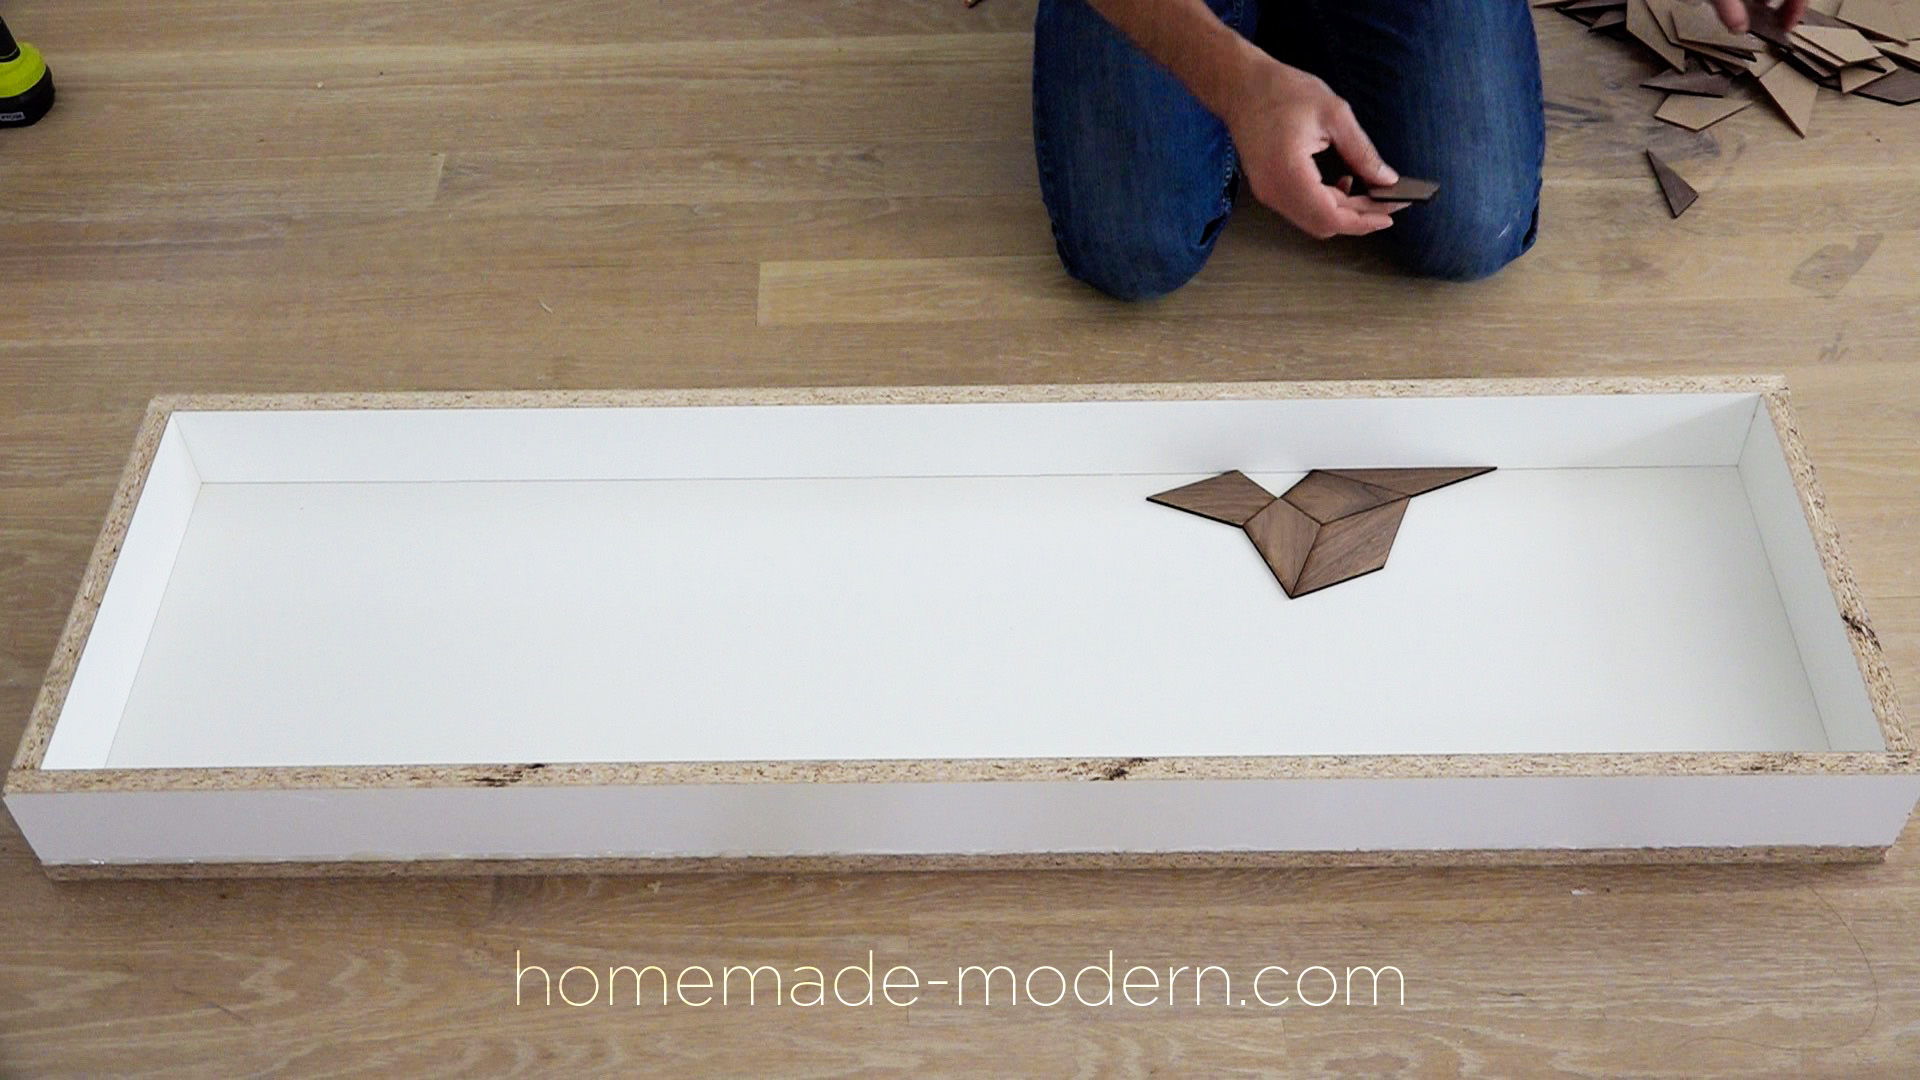 This white concrete table has a laser cut walnut inlay and was designed by Ben Uyeda. For more information go to HomeMade-Modern.com